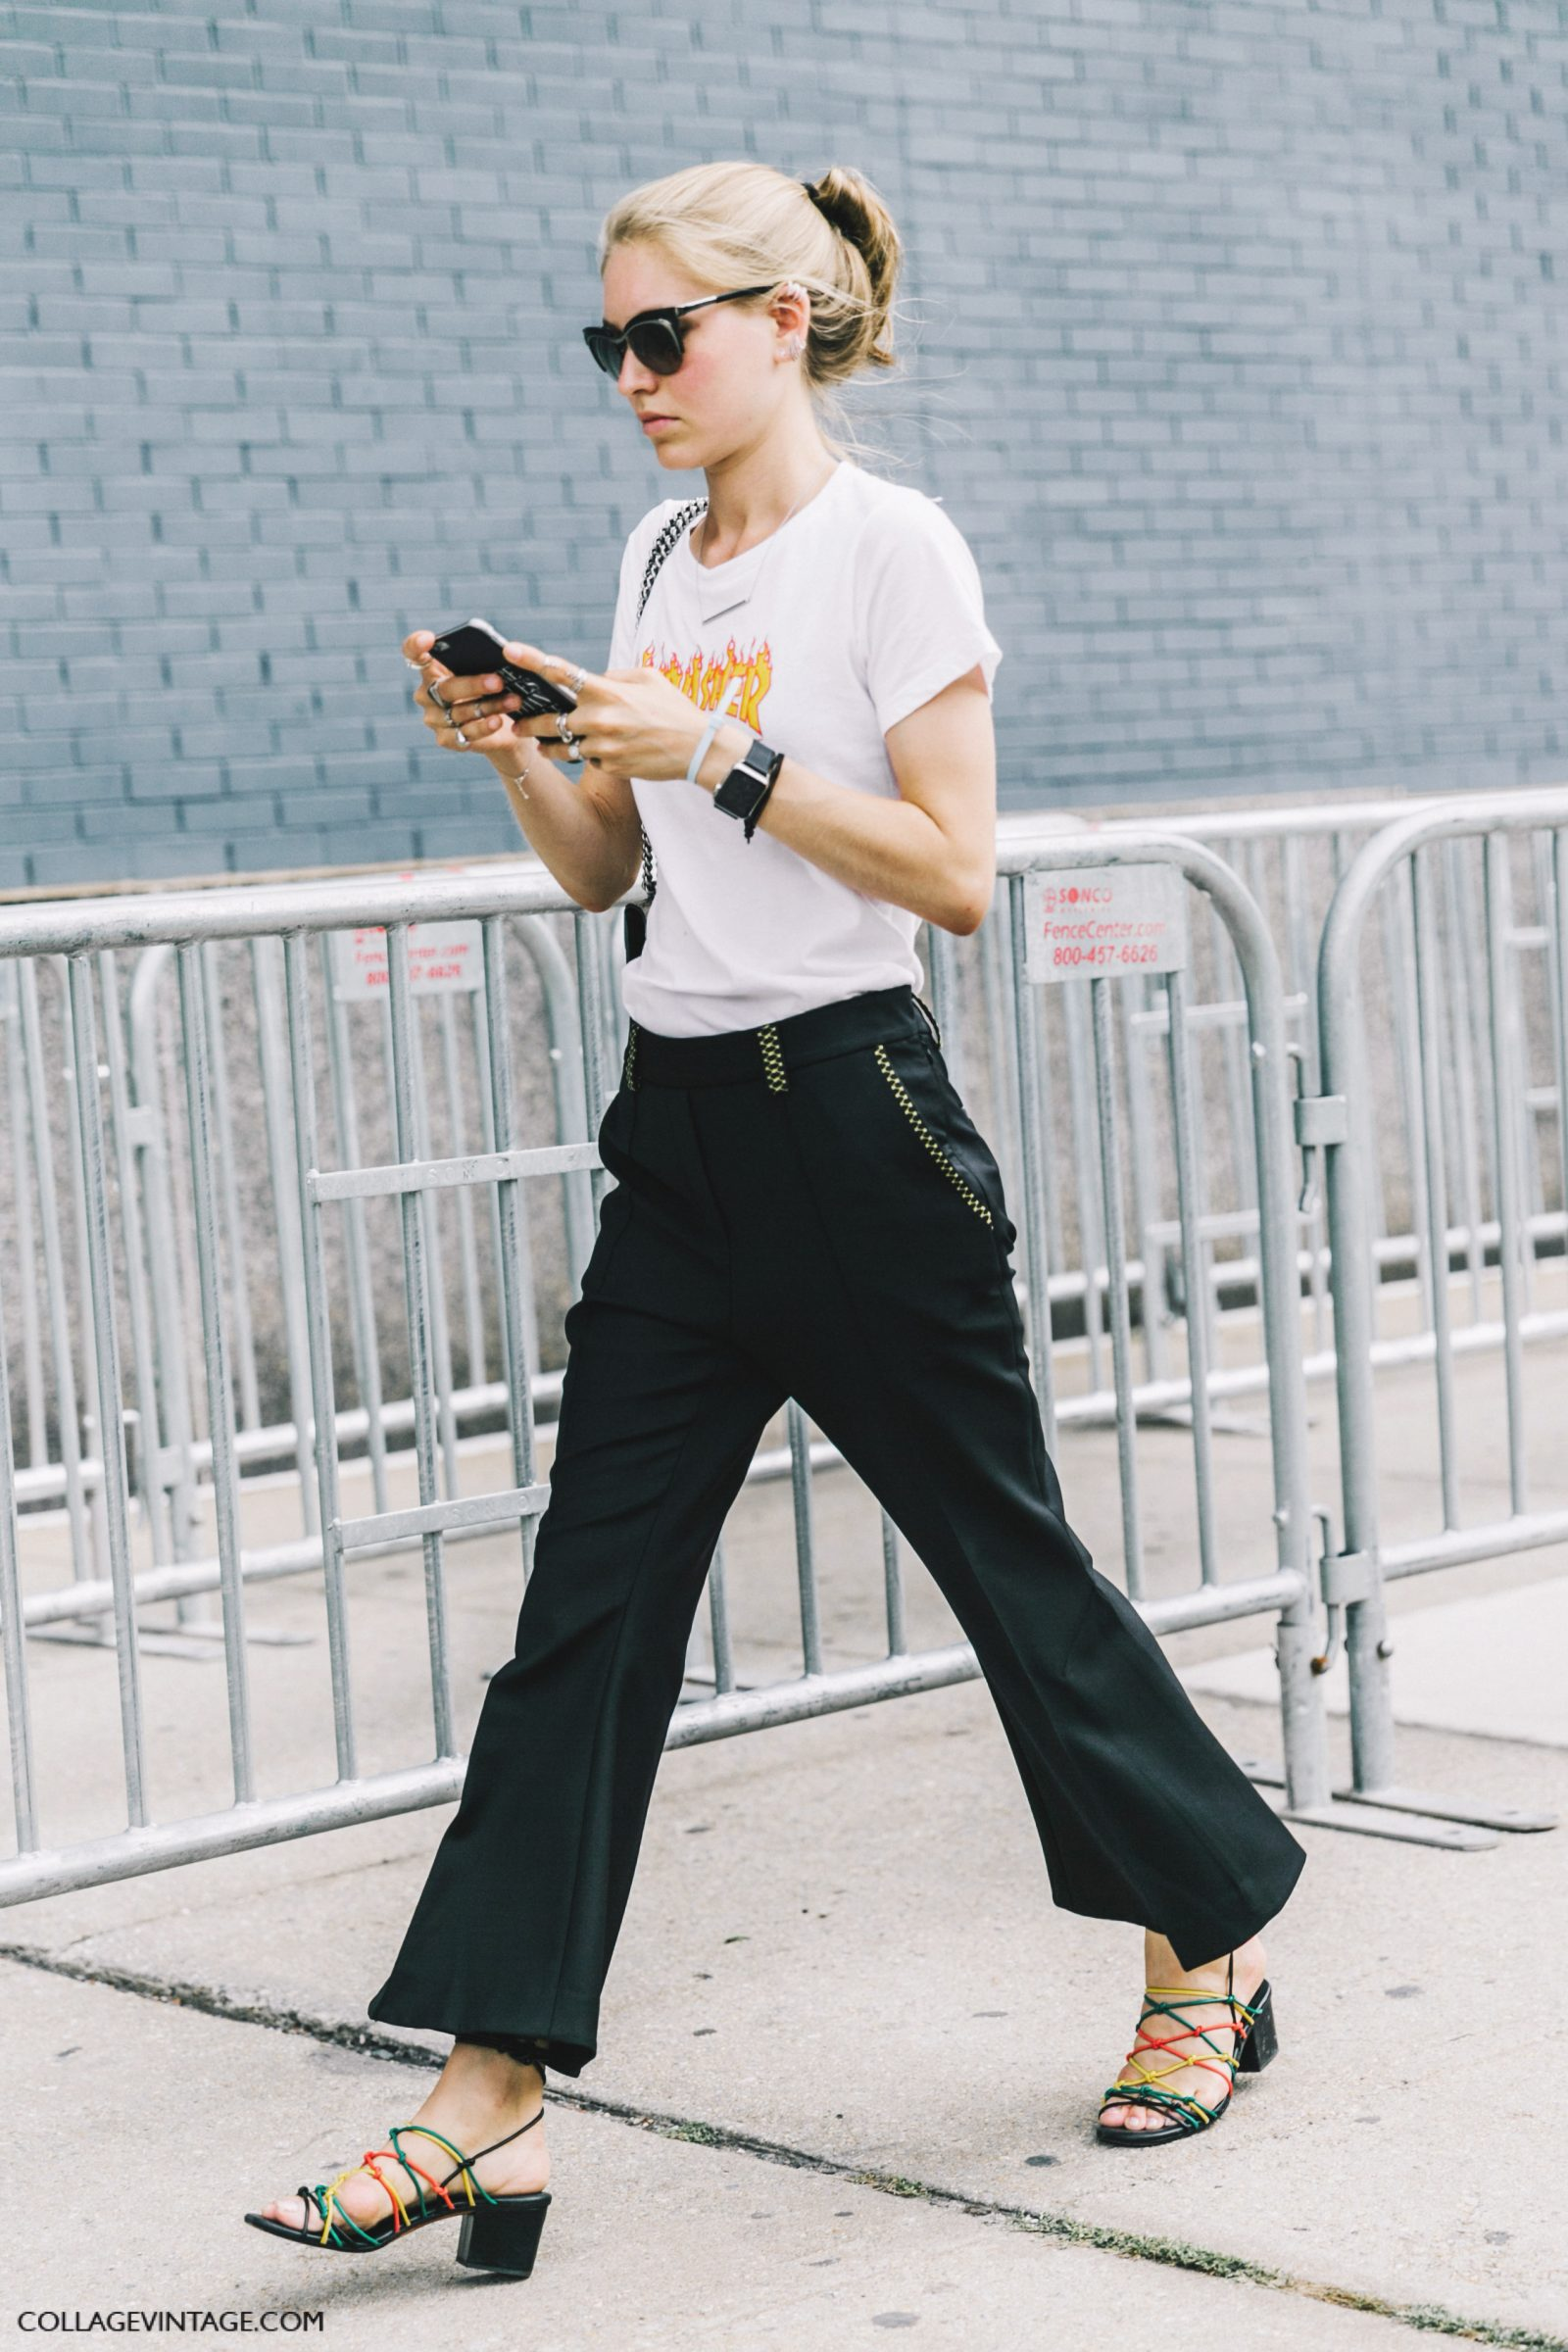 nyfw-new_york_fashion_week_ss17-street_style-outfits-collage_vintage-jessica_minkoff-earrings-graphic_tee-black_trousers-chloe_sandals-gucci_bag